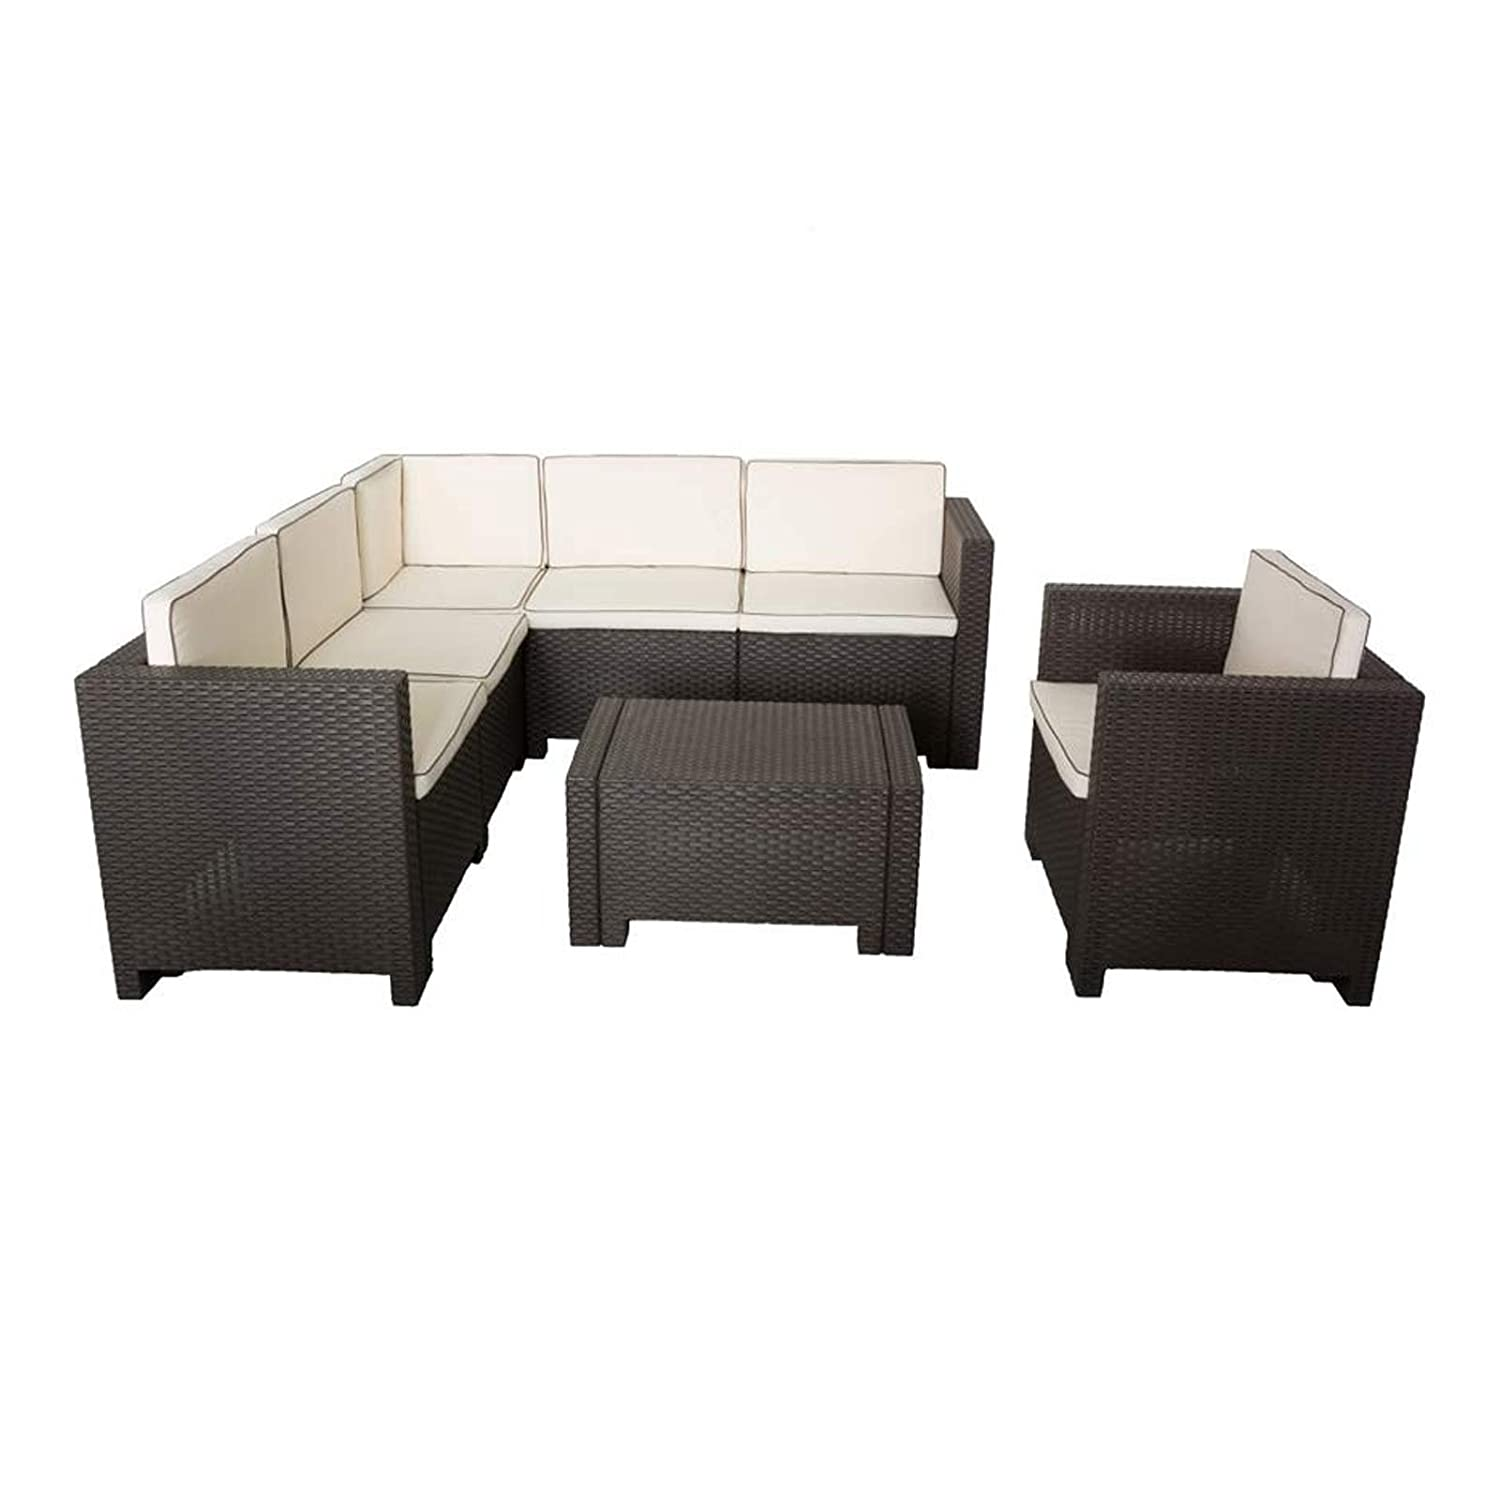 sitzgarnitur anthrazit in rattan optik lounge tisch stuhl innen au en bestellen. Black Bedroom Furniture Sets. Home Design Ideas